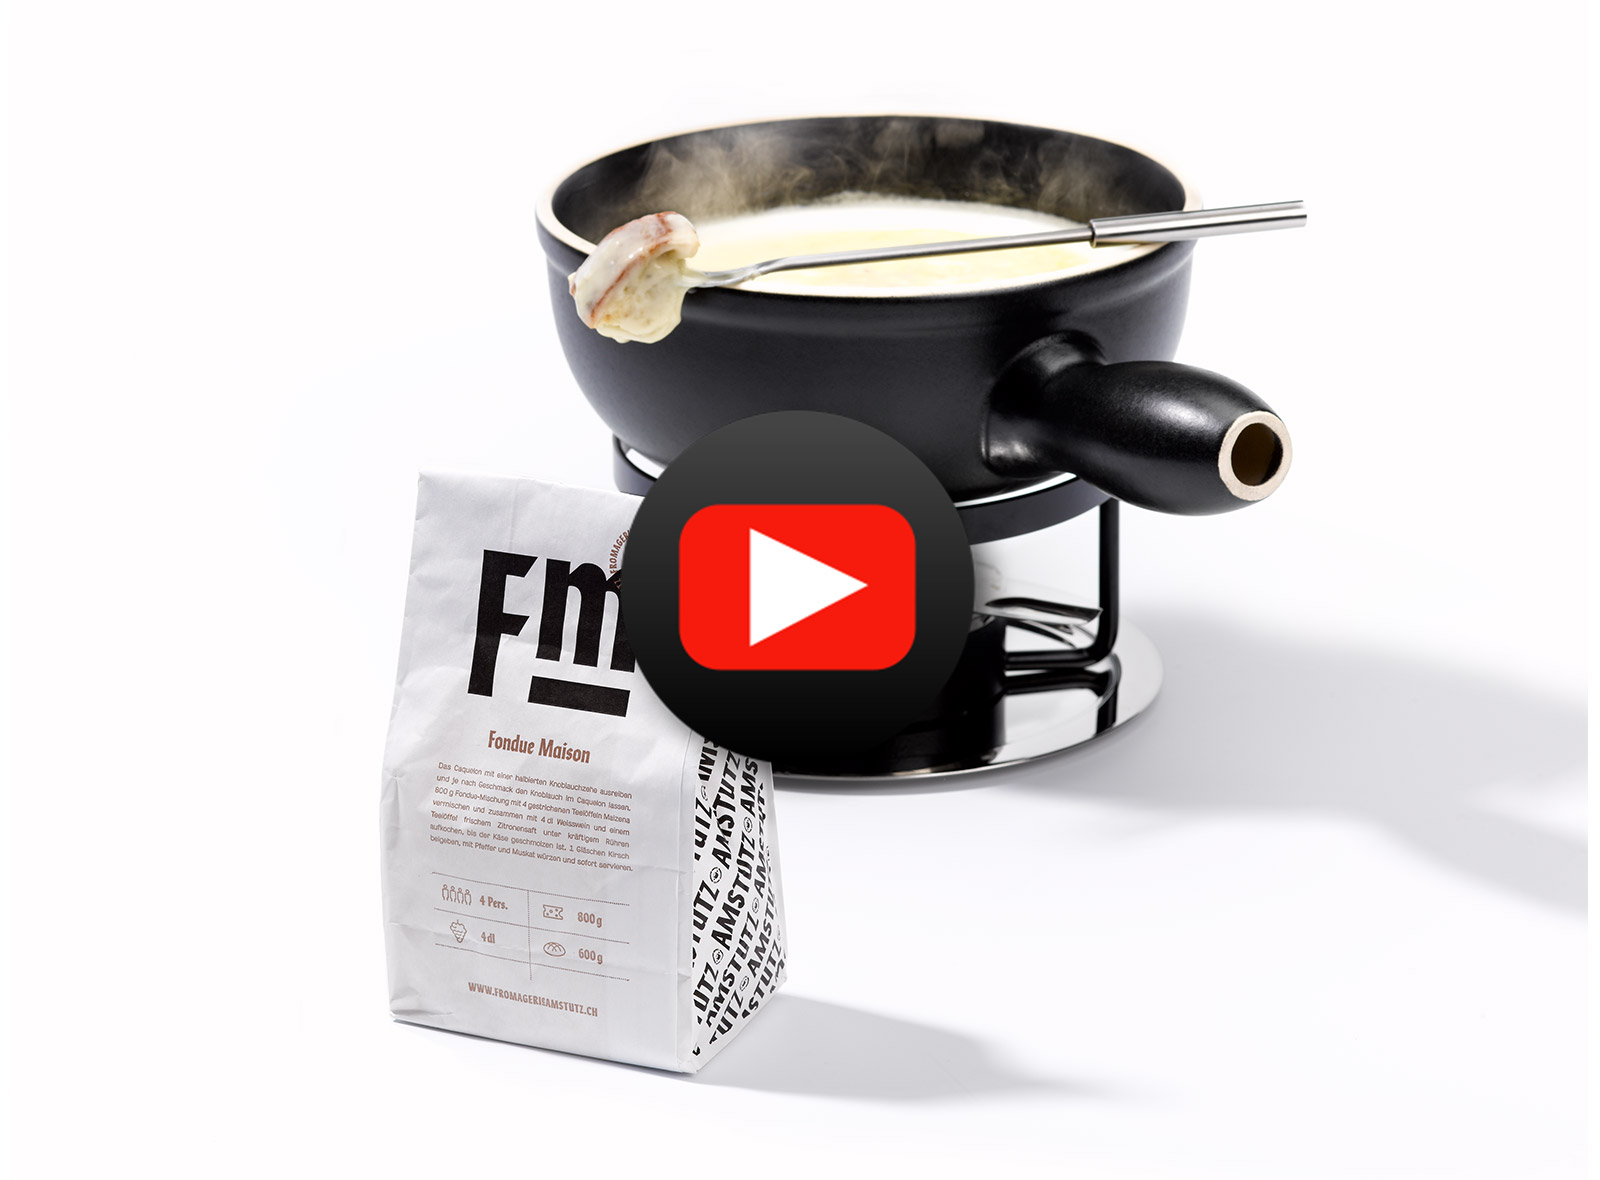 Video - Fondue kochen